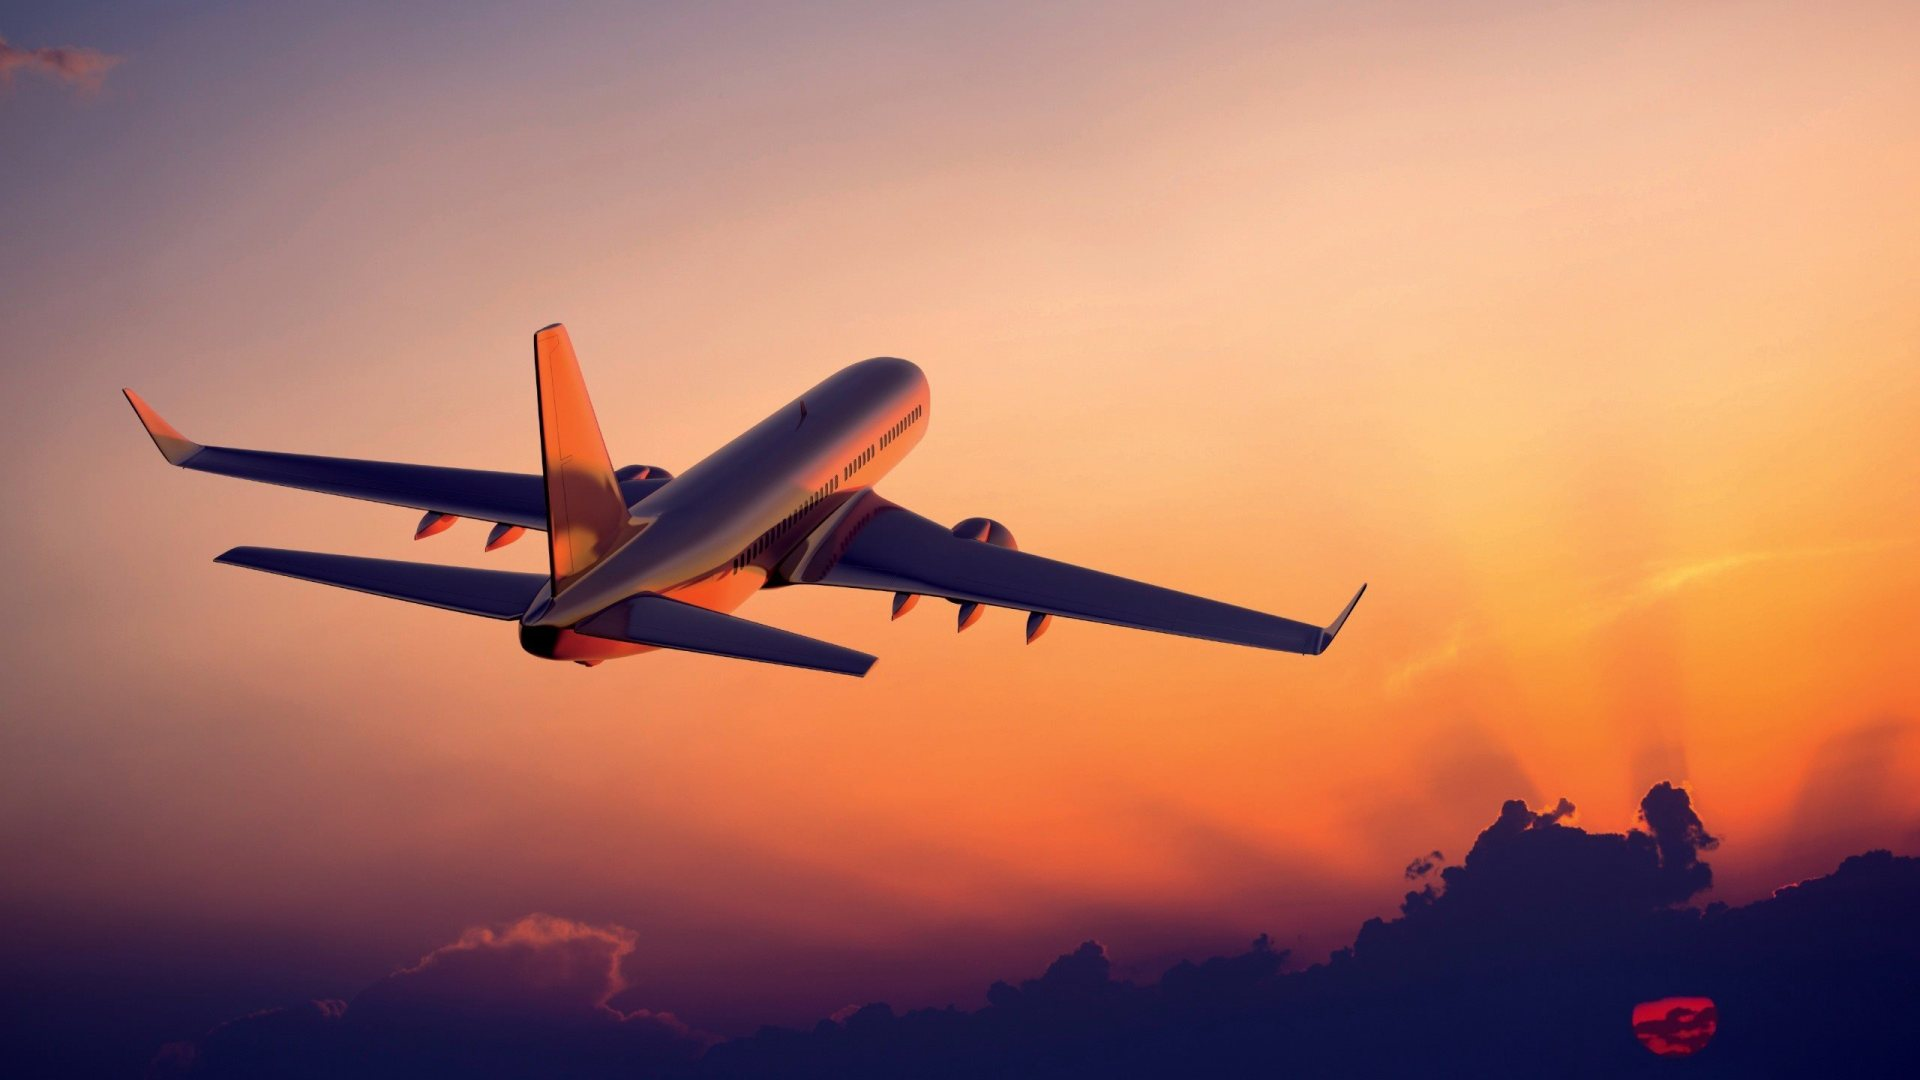 Passenger Aircraft At Sunset HD Desktop Background wallpaper